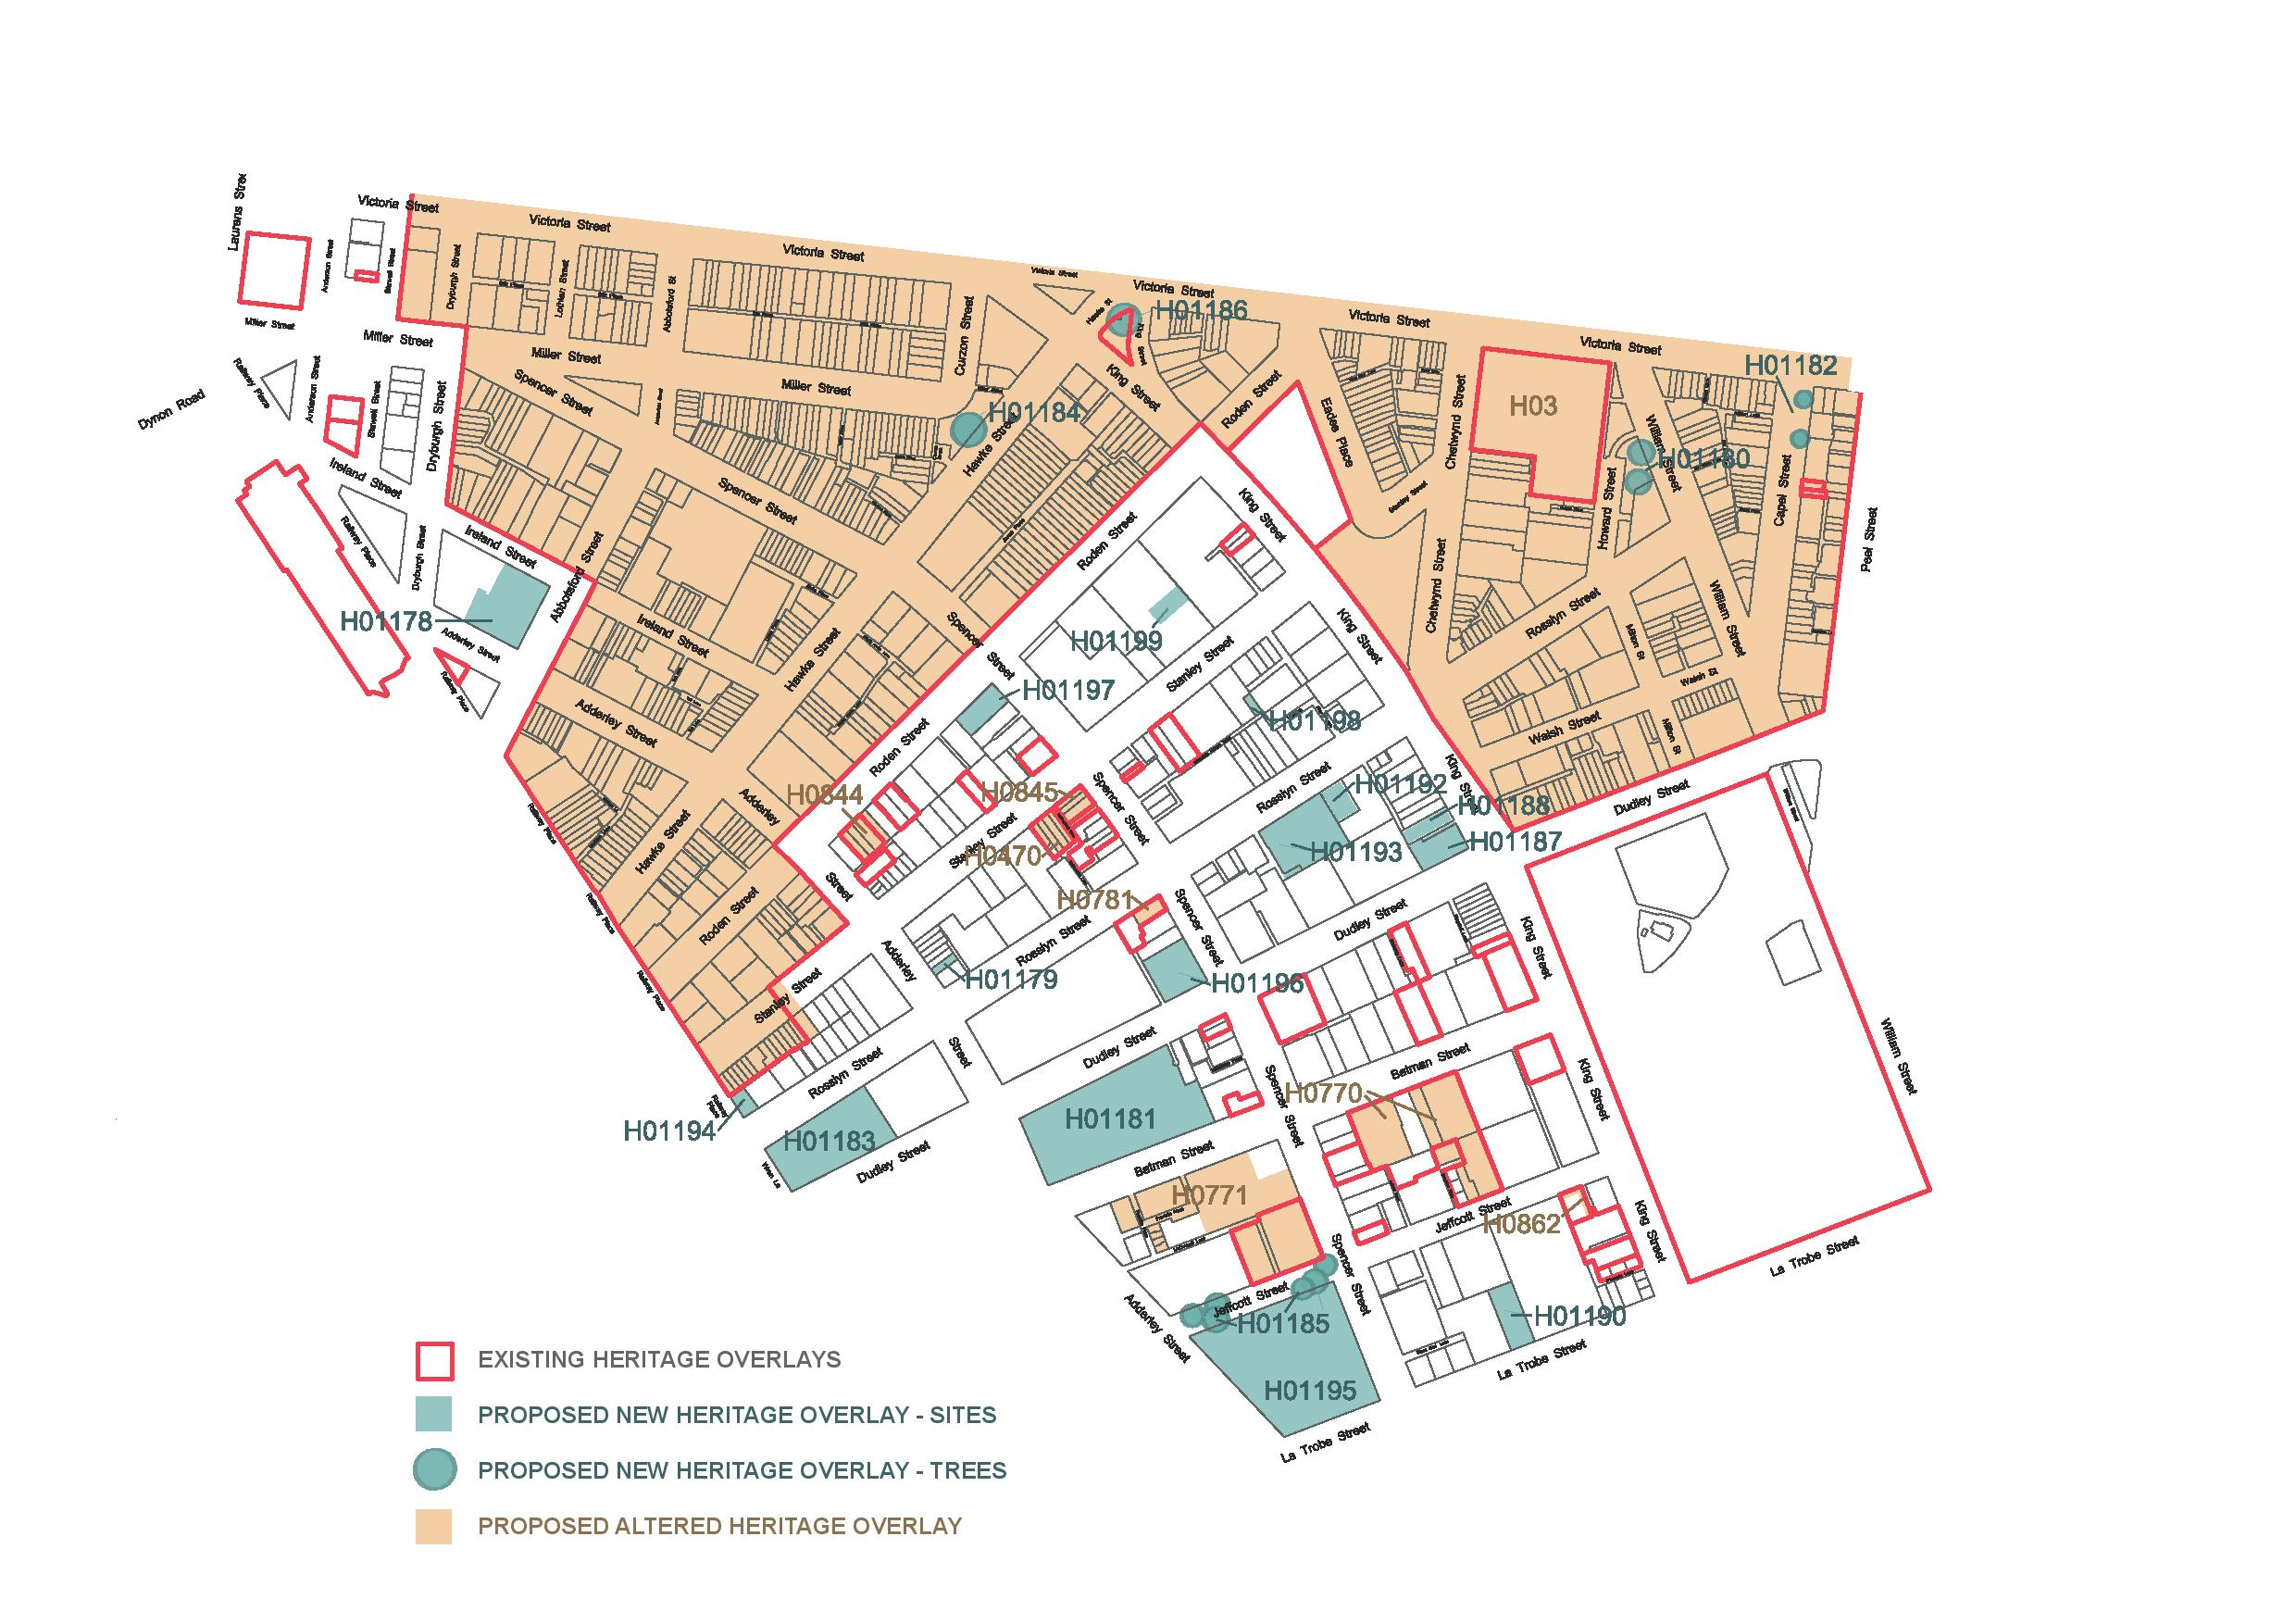 Map of West Melbourne Heritage Review Area (C258 - West Melbourne Heritage Review)